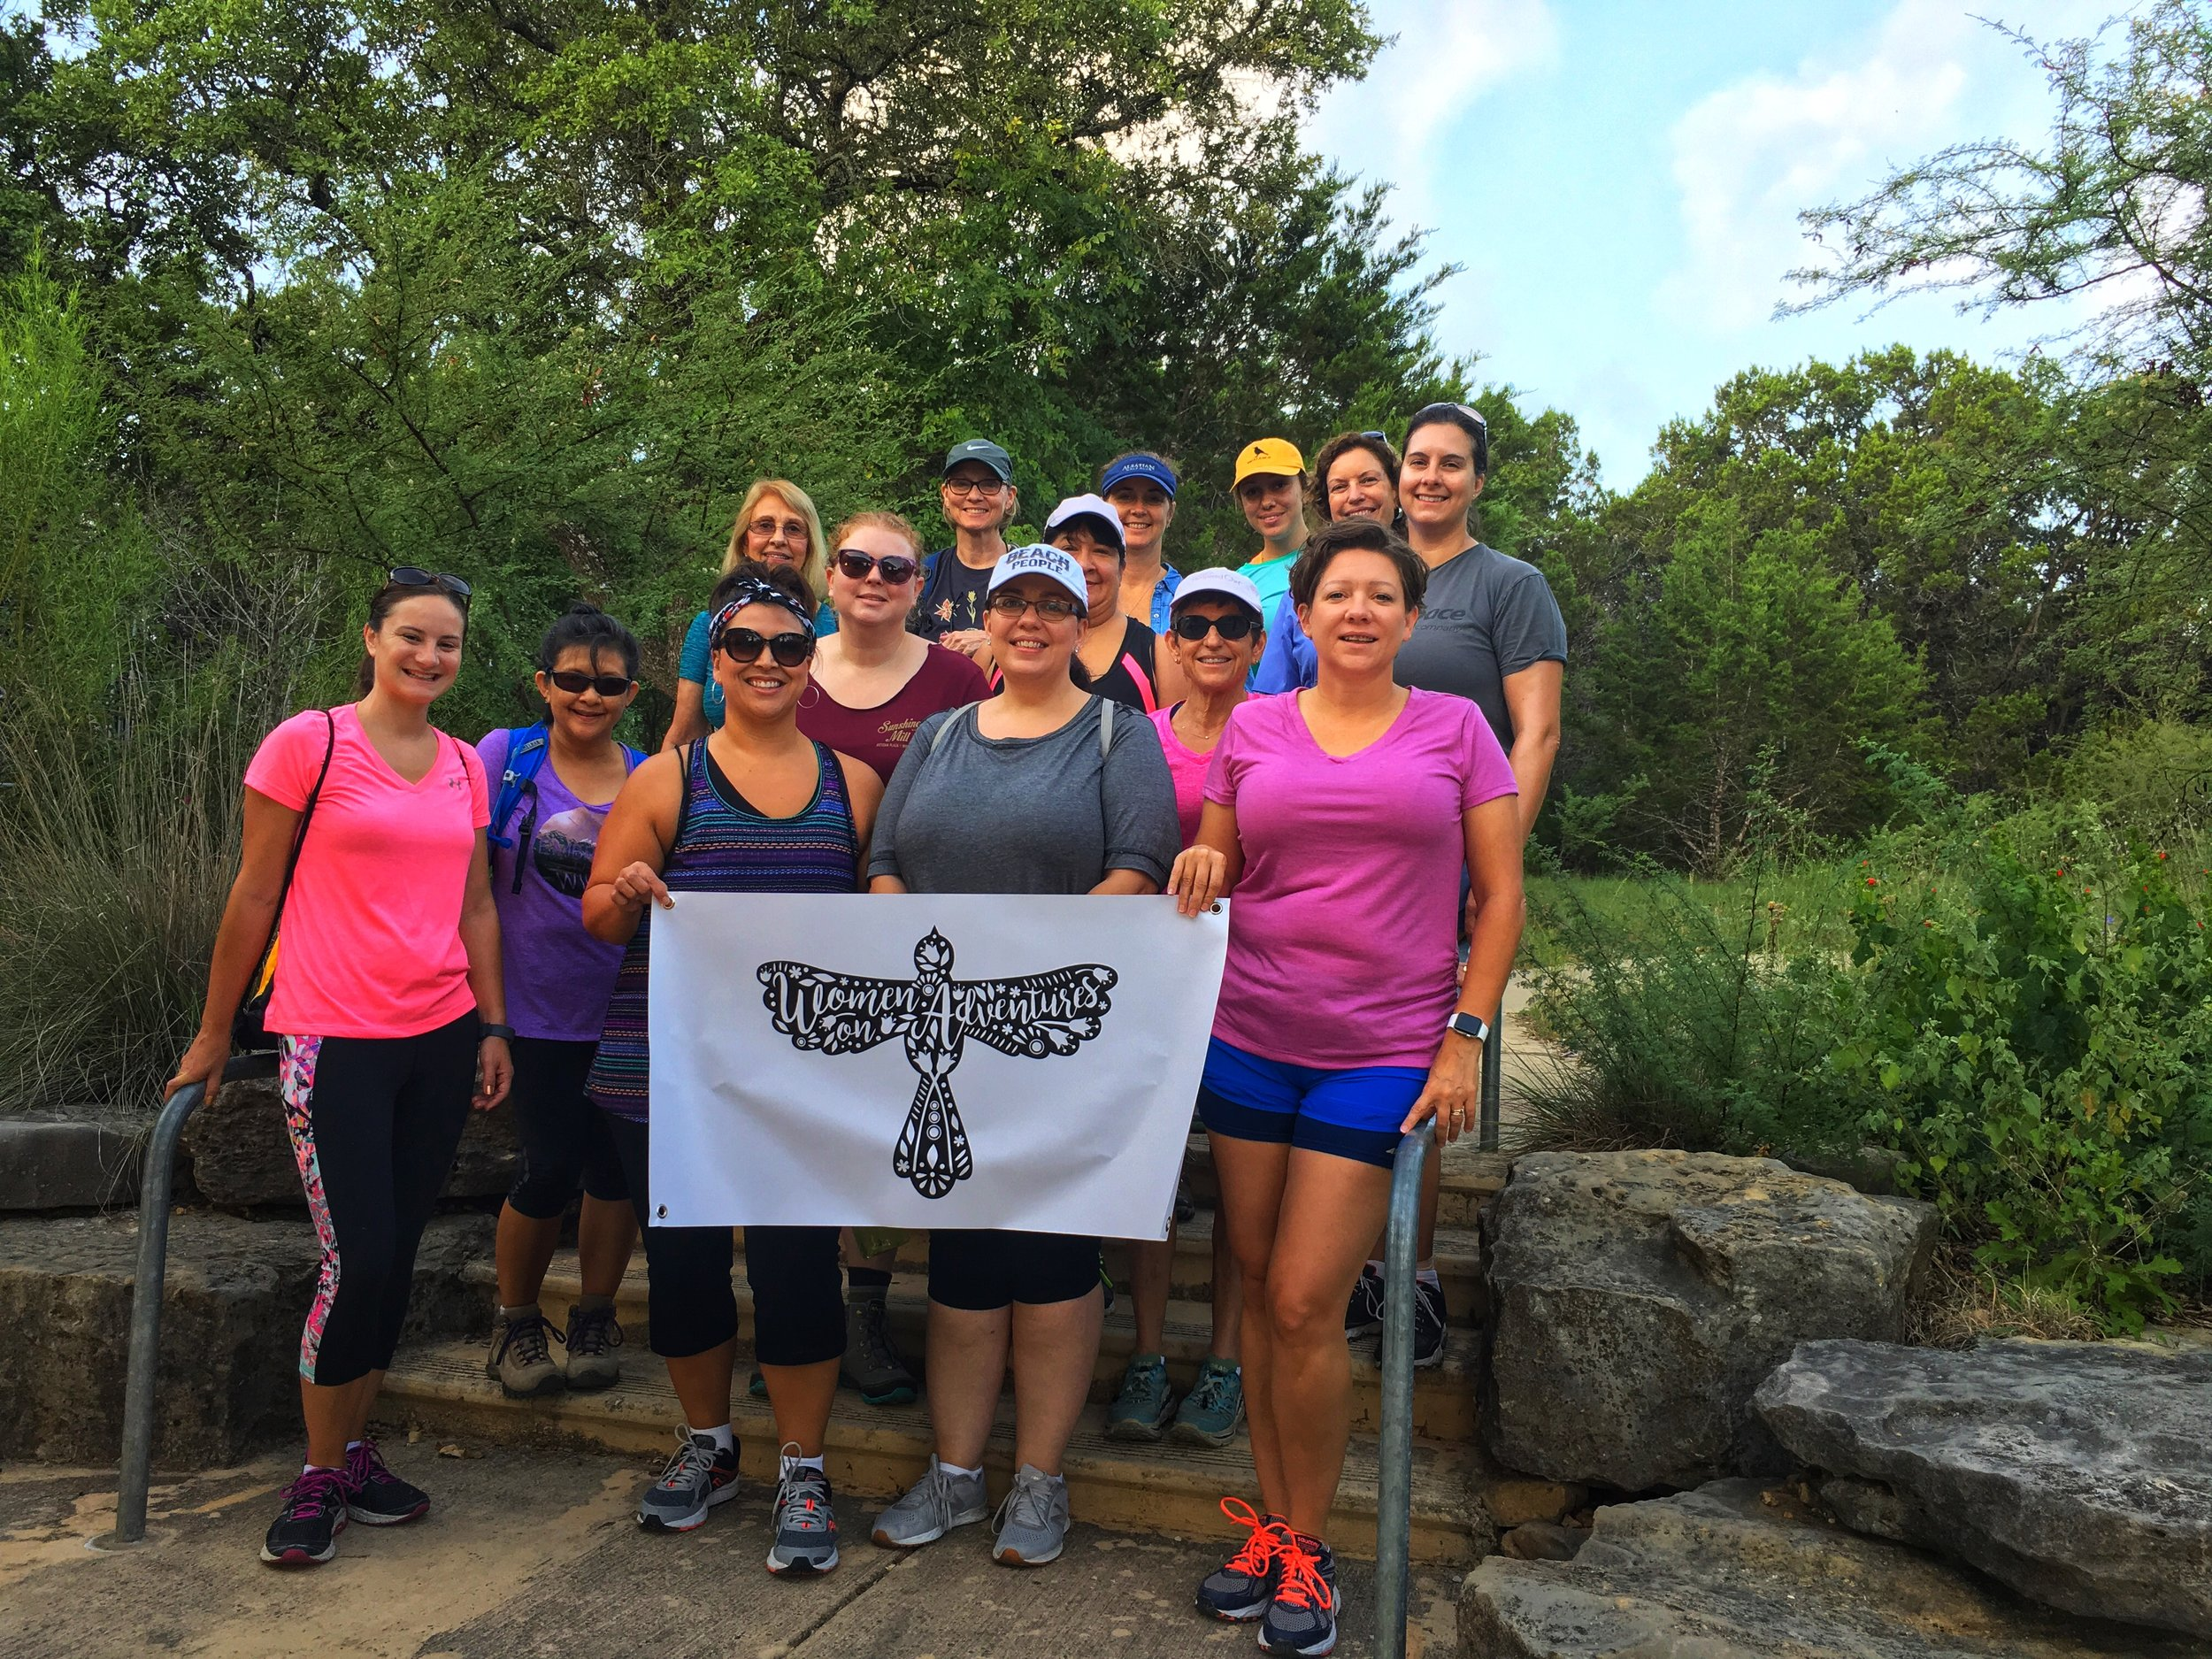 San Antonio WOA outpost on a hike and brunch.